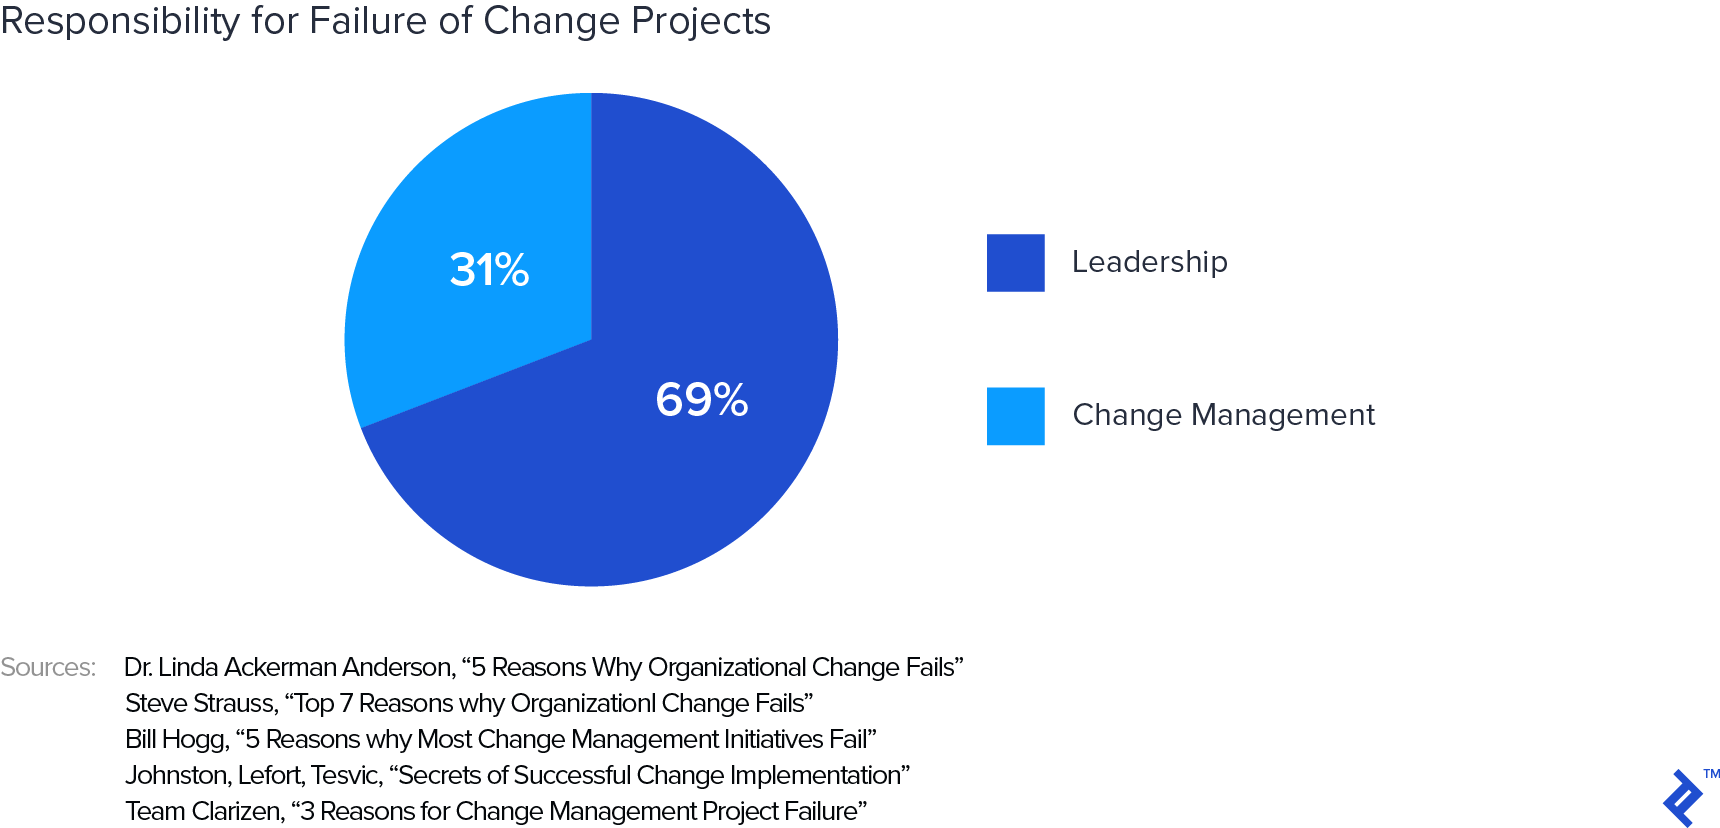 Pie chart depicting responsibility for failure of change projects